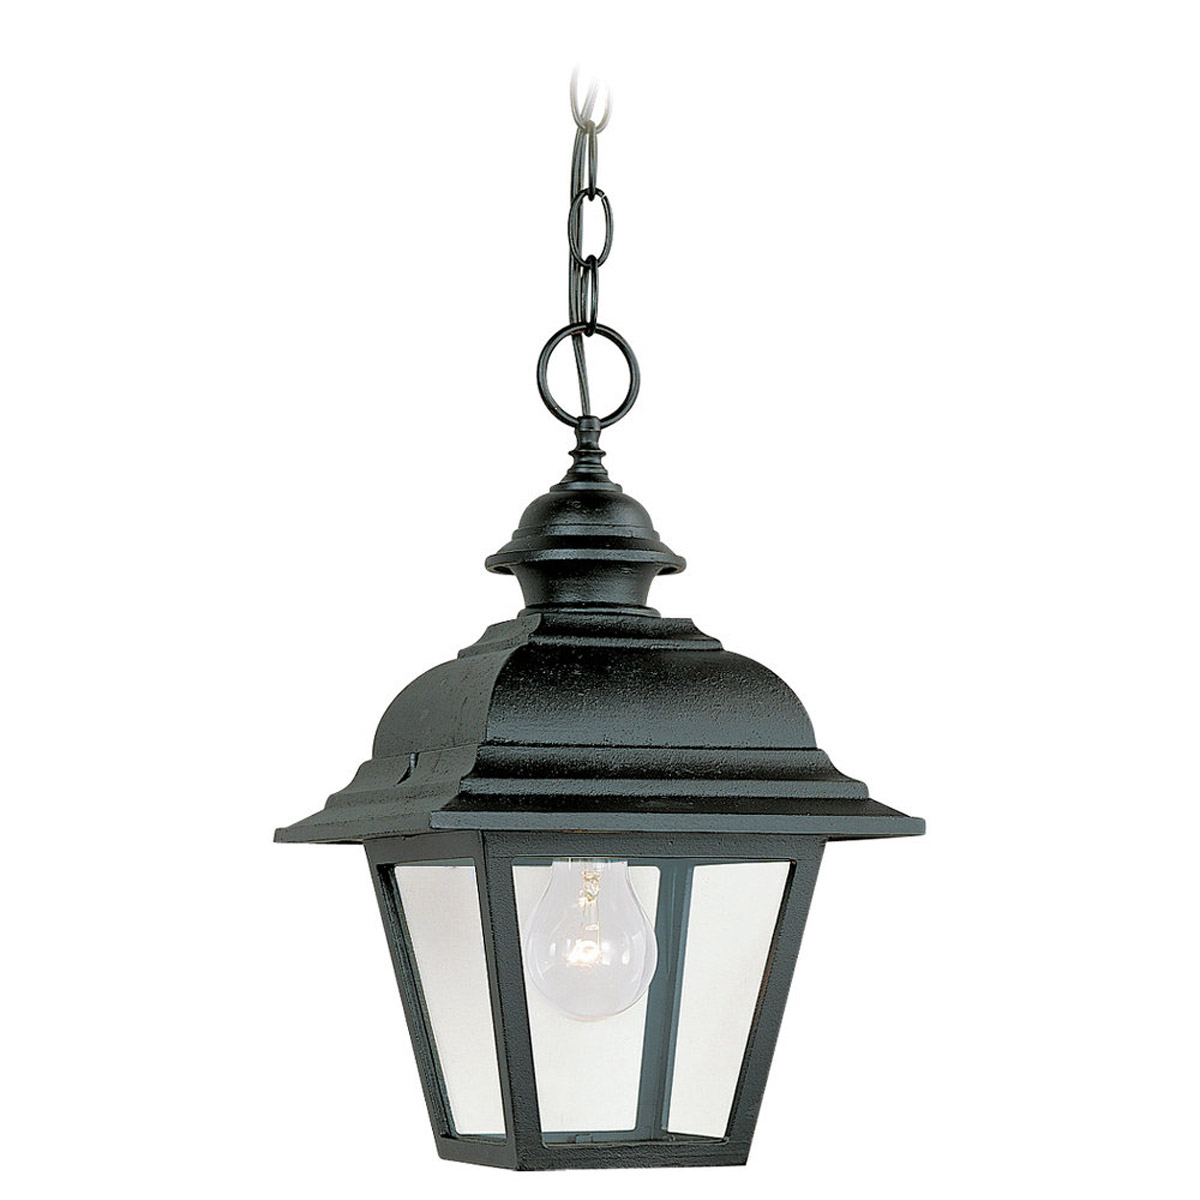 Sea Gull Lighting Bancroft 1 Light Outdoor Pendant in Black 6016-12